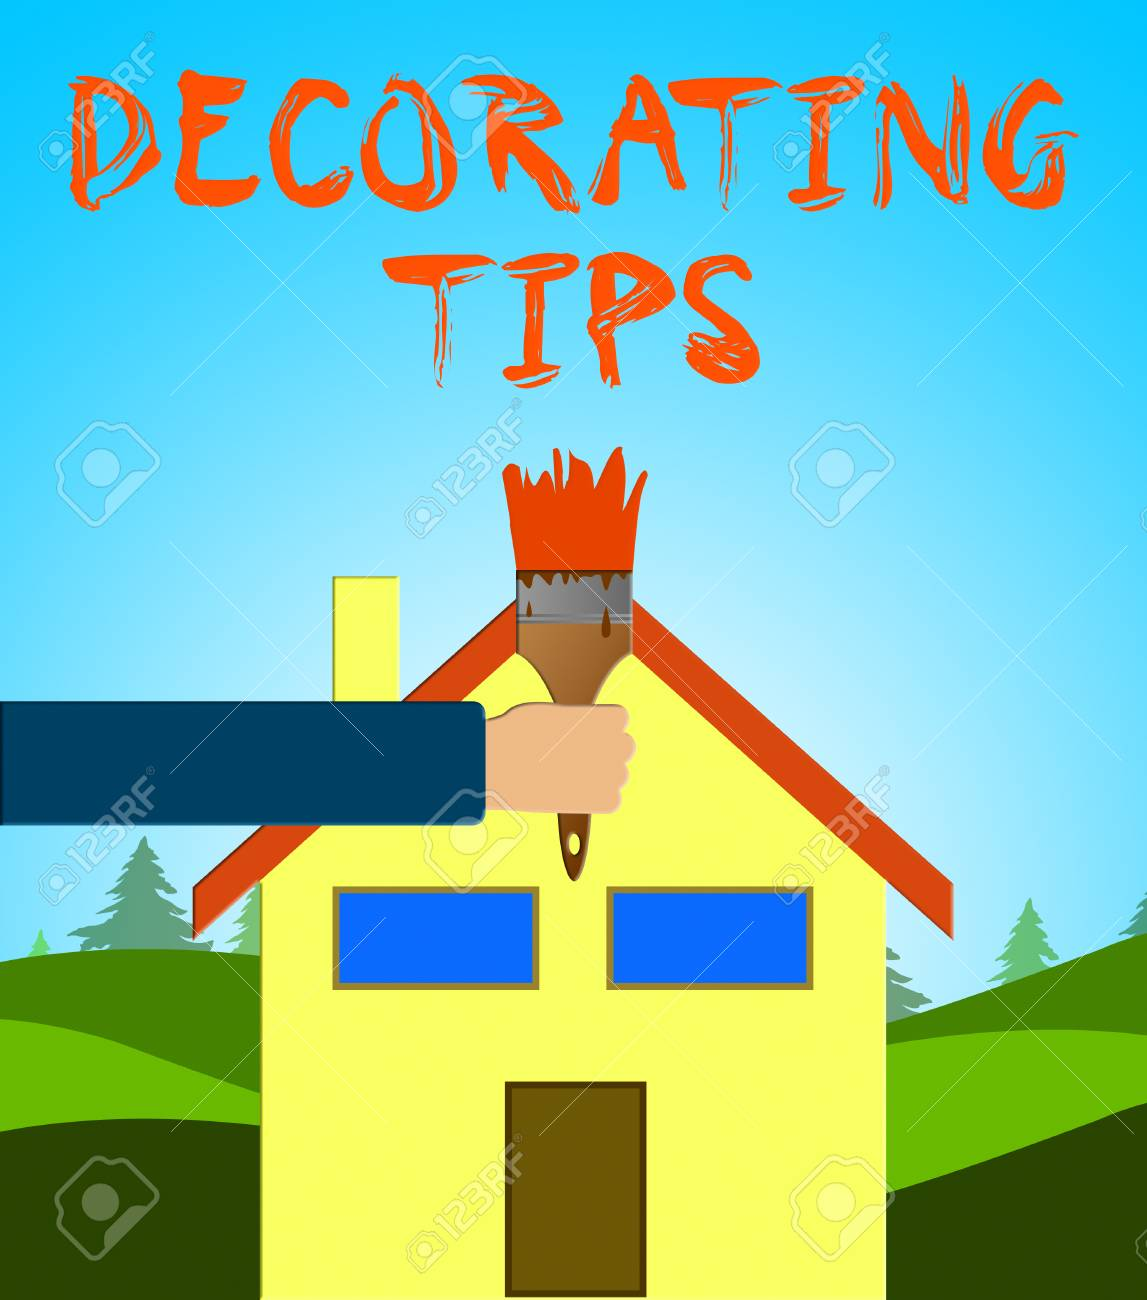 Decorating Tips Paintbrush Showing Decoration Advice 3d Illustration Stock  Illustration   79714300